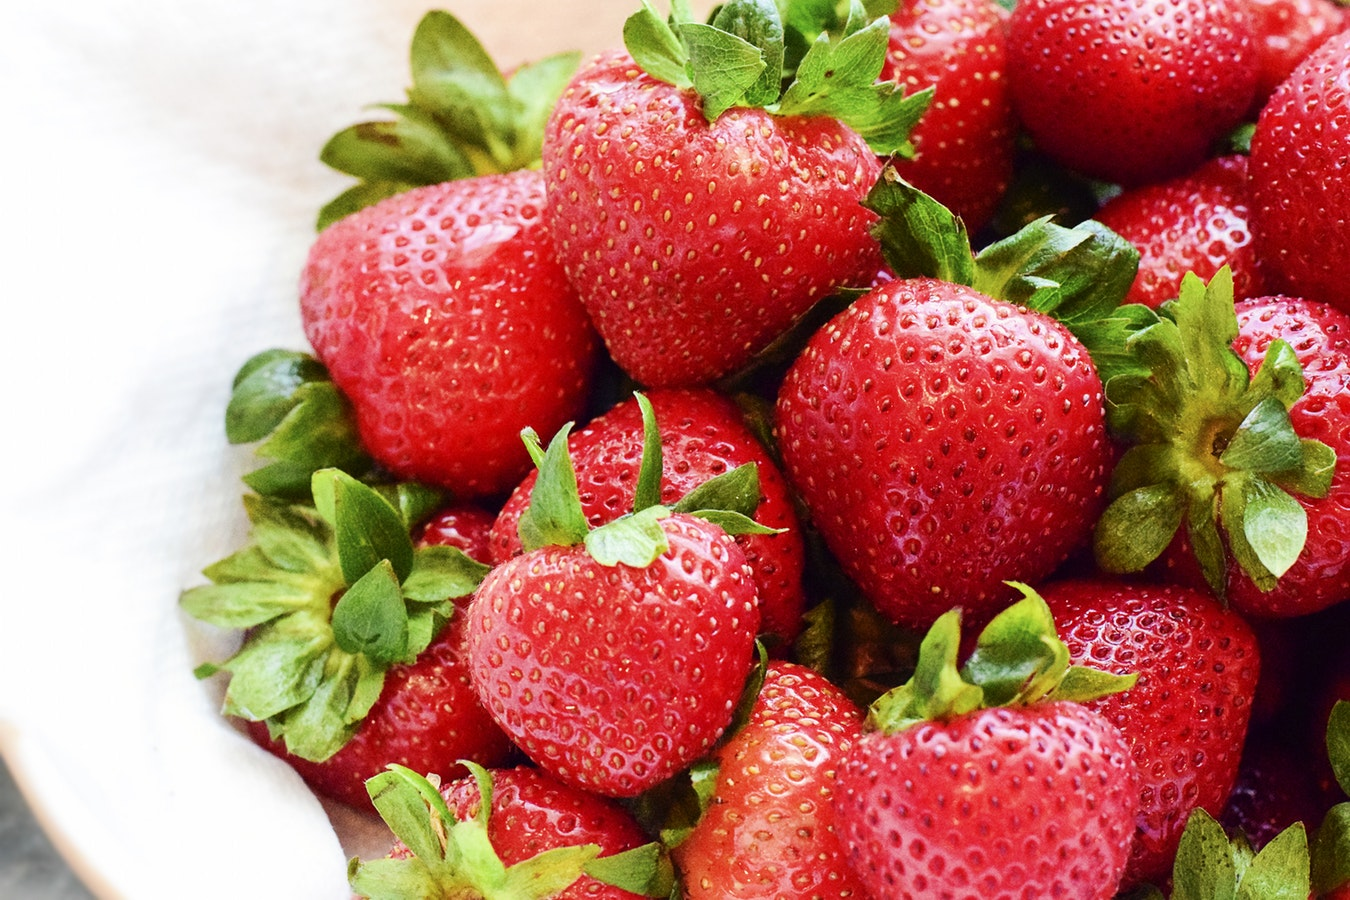 A bowl of fresh strawberries. Strawberries are a great source of Vitamin C for seniors